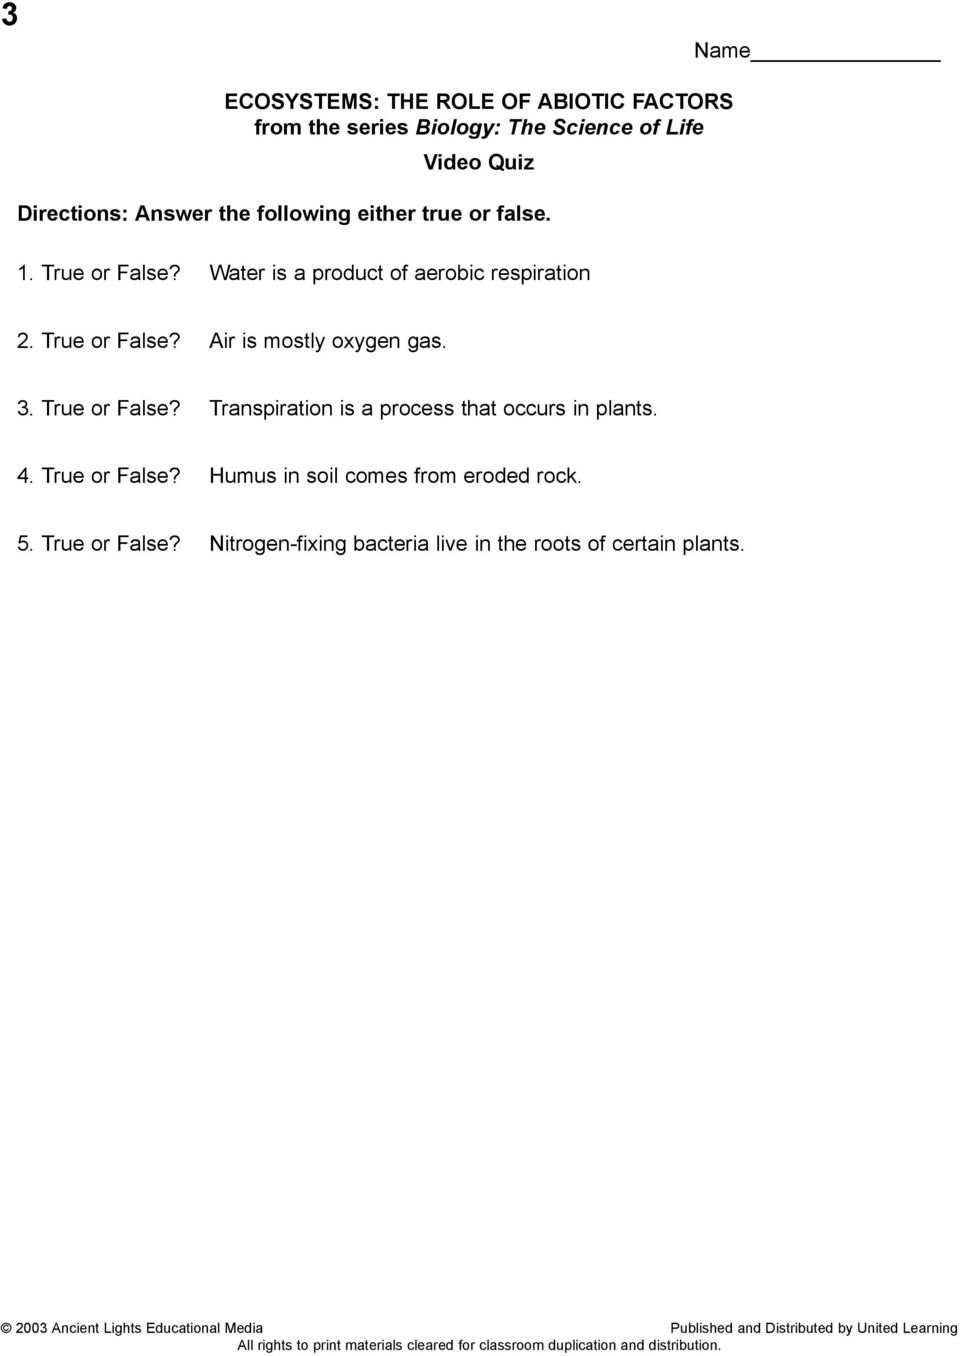 worksheet Section 4 2 What Shapes An Ecosystem Worksheet Answers ecosystems the role of abiotic factors from series biology 4 true or false humus in soil comes eroded rock 5